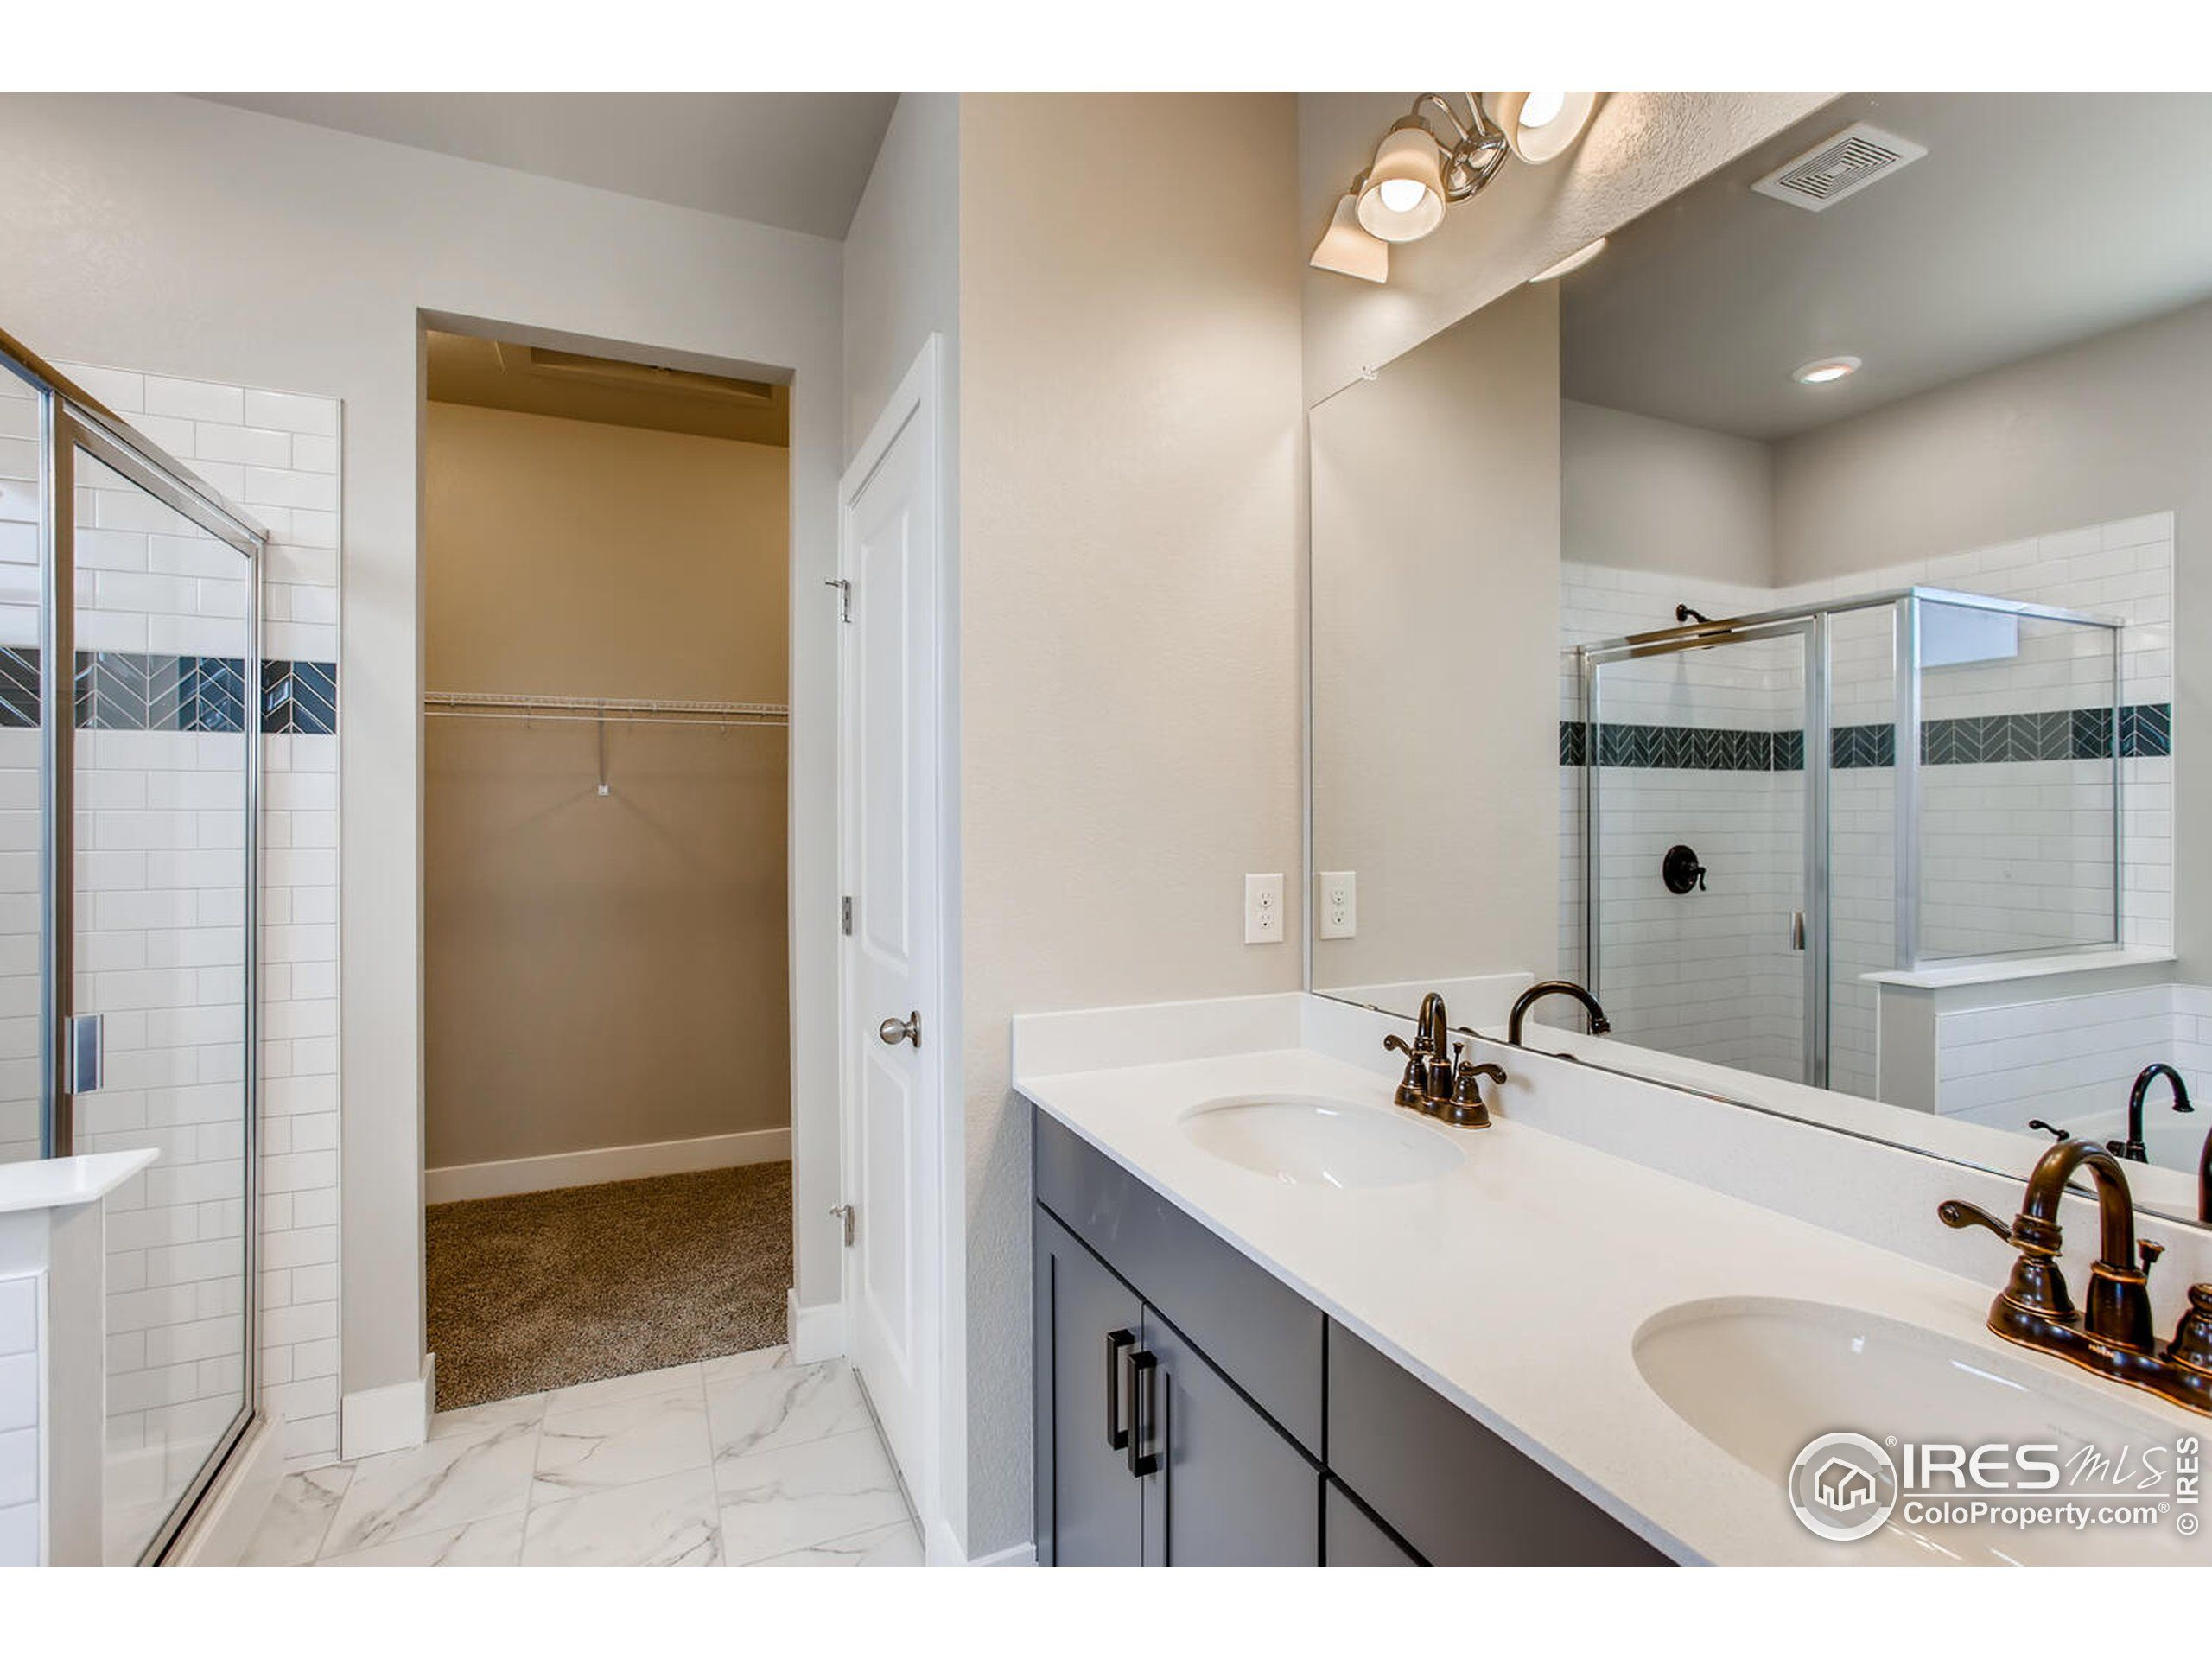 Bathroom featured in the Yukon By Dream Finders Homes in Greeley, CO